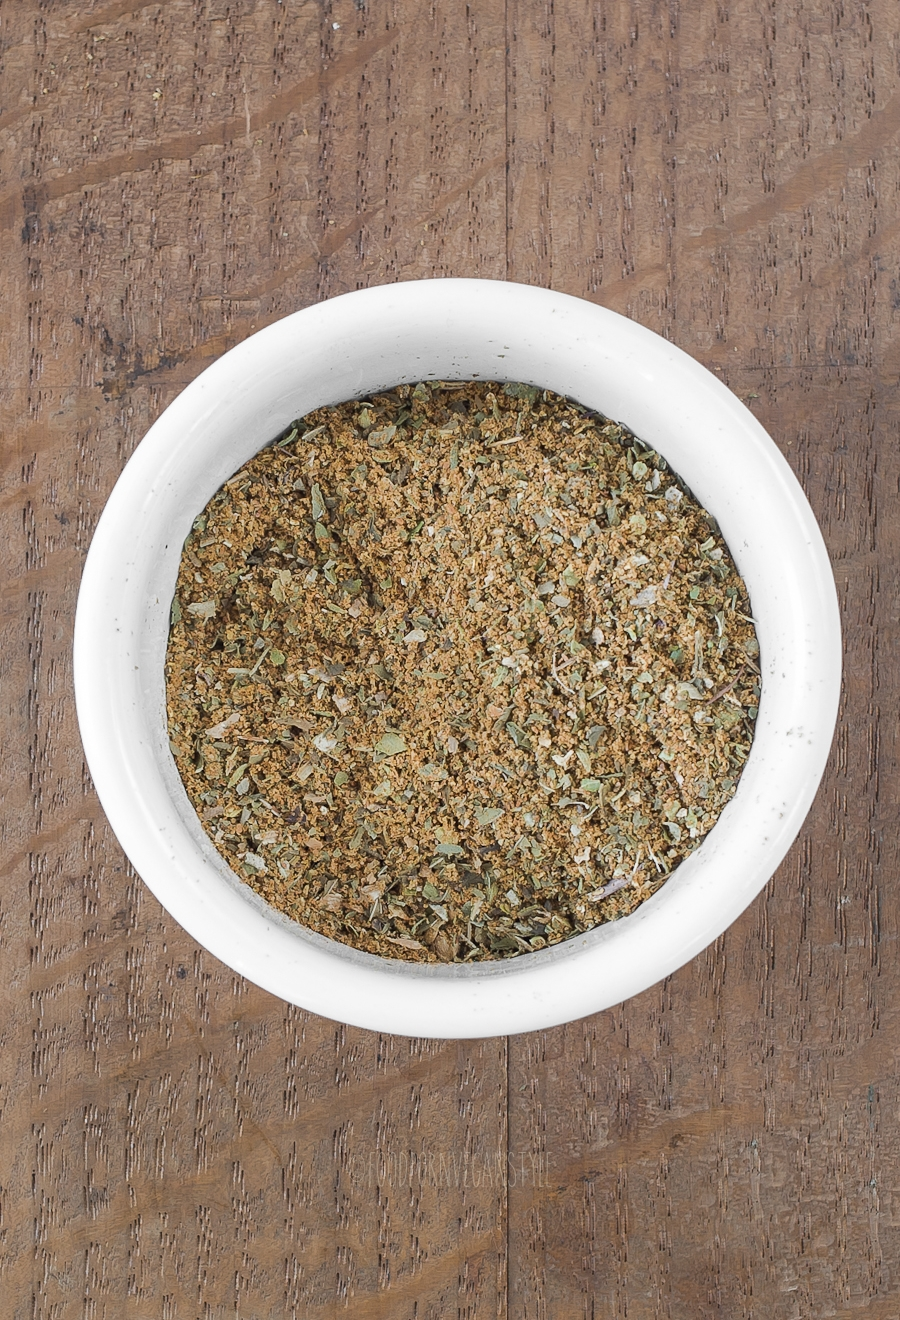 Baharat (spice blend used in arabib cuisine)